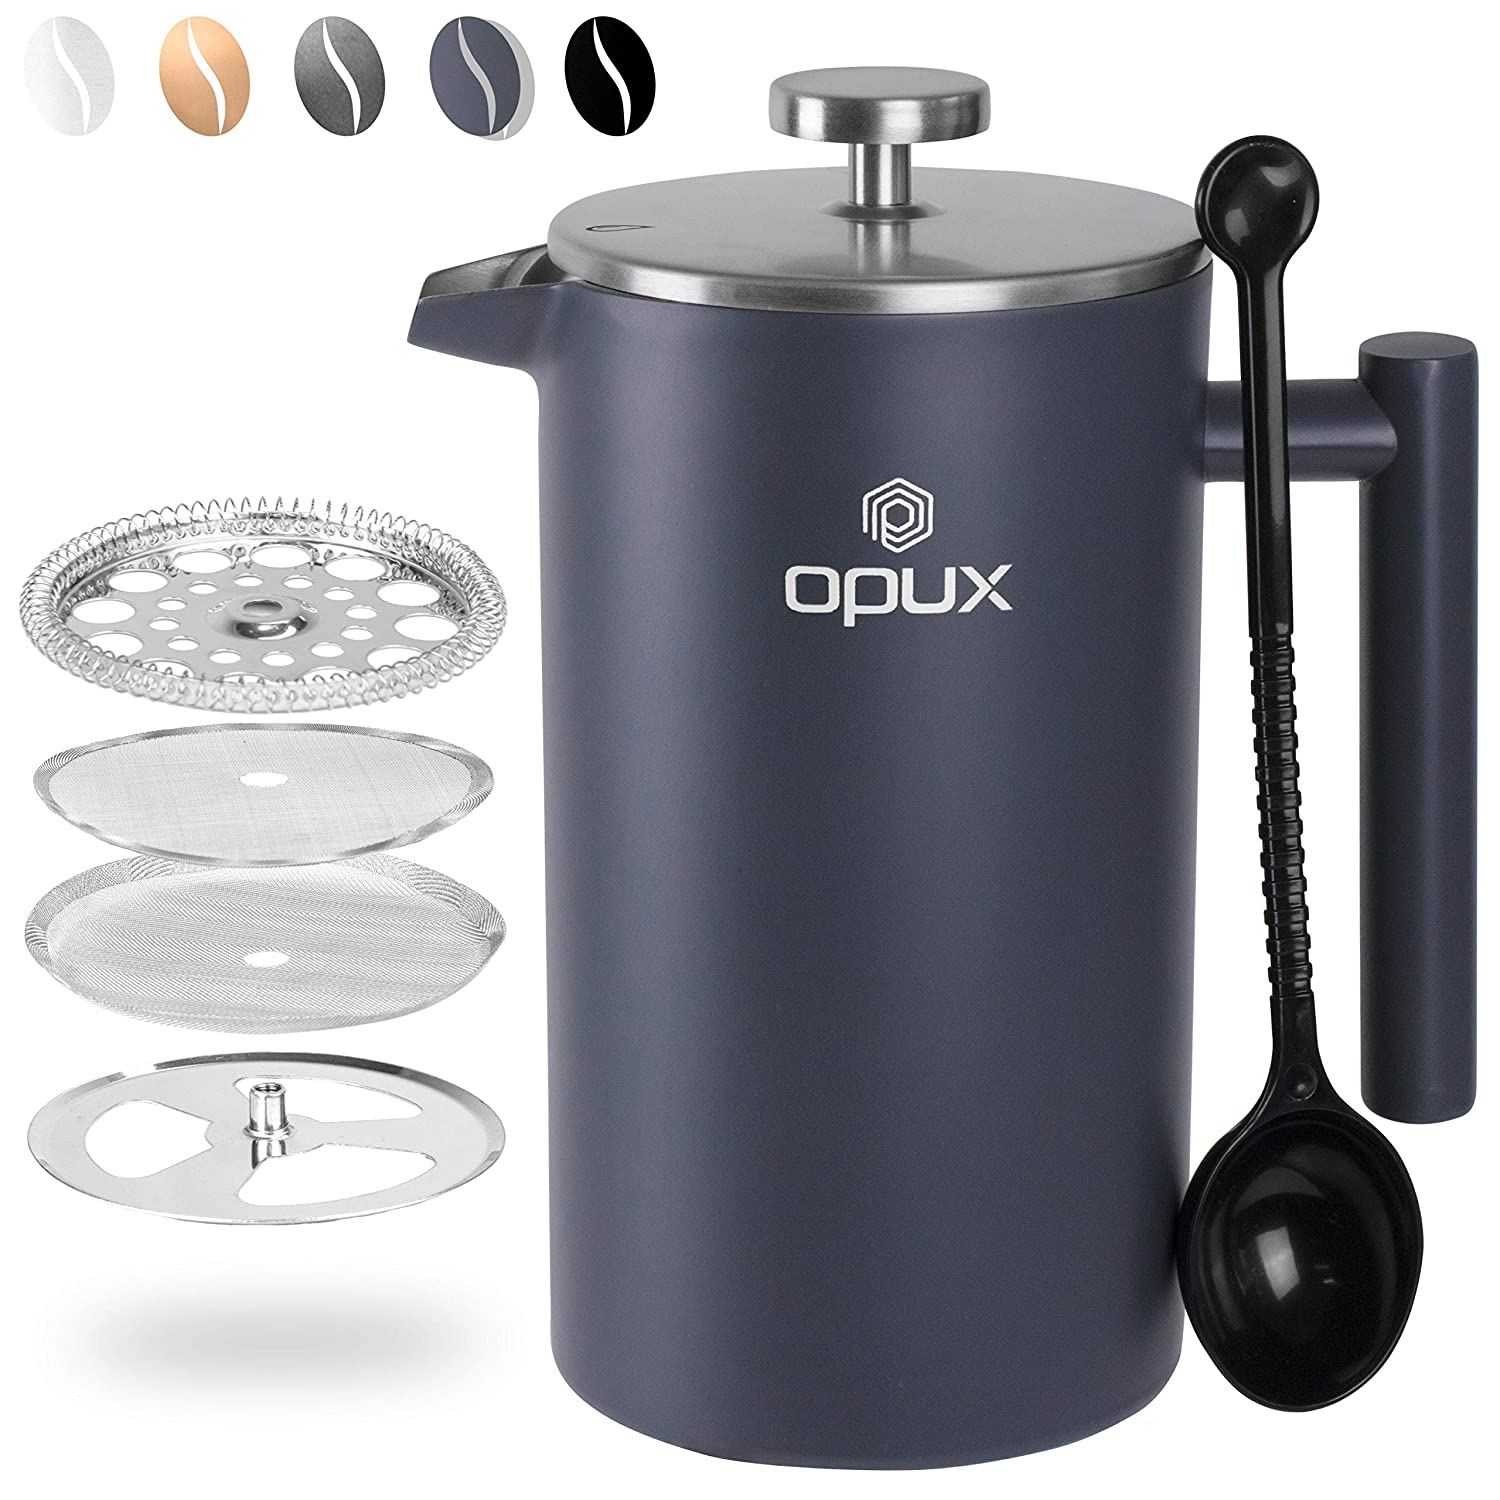 OPUX French Press Insulated Coffee Maker | Double Wall 304 Stainless Steel 4 Cup Coffee Press Pot with 4 Level Filter Screen System for Pour Over Brewing | 34 fl oz (1 Liter) (Matte Grey)